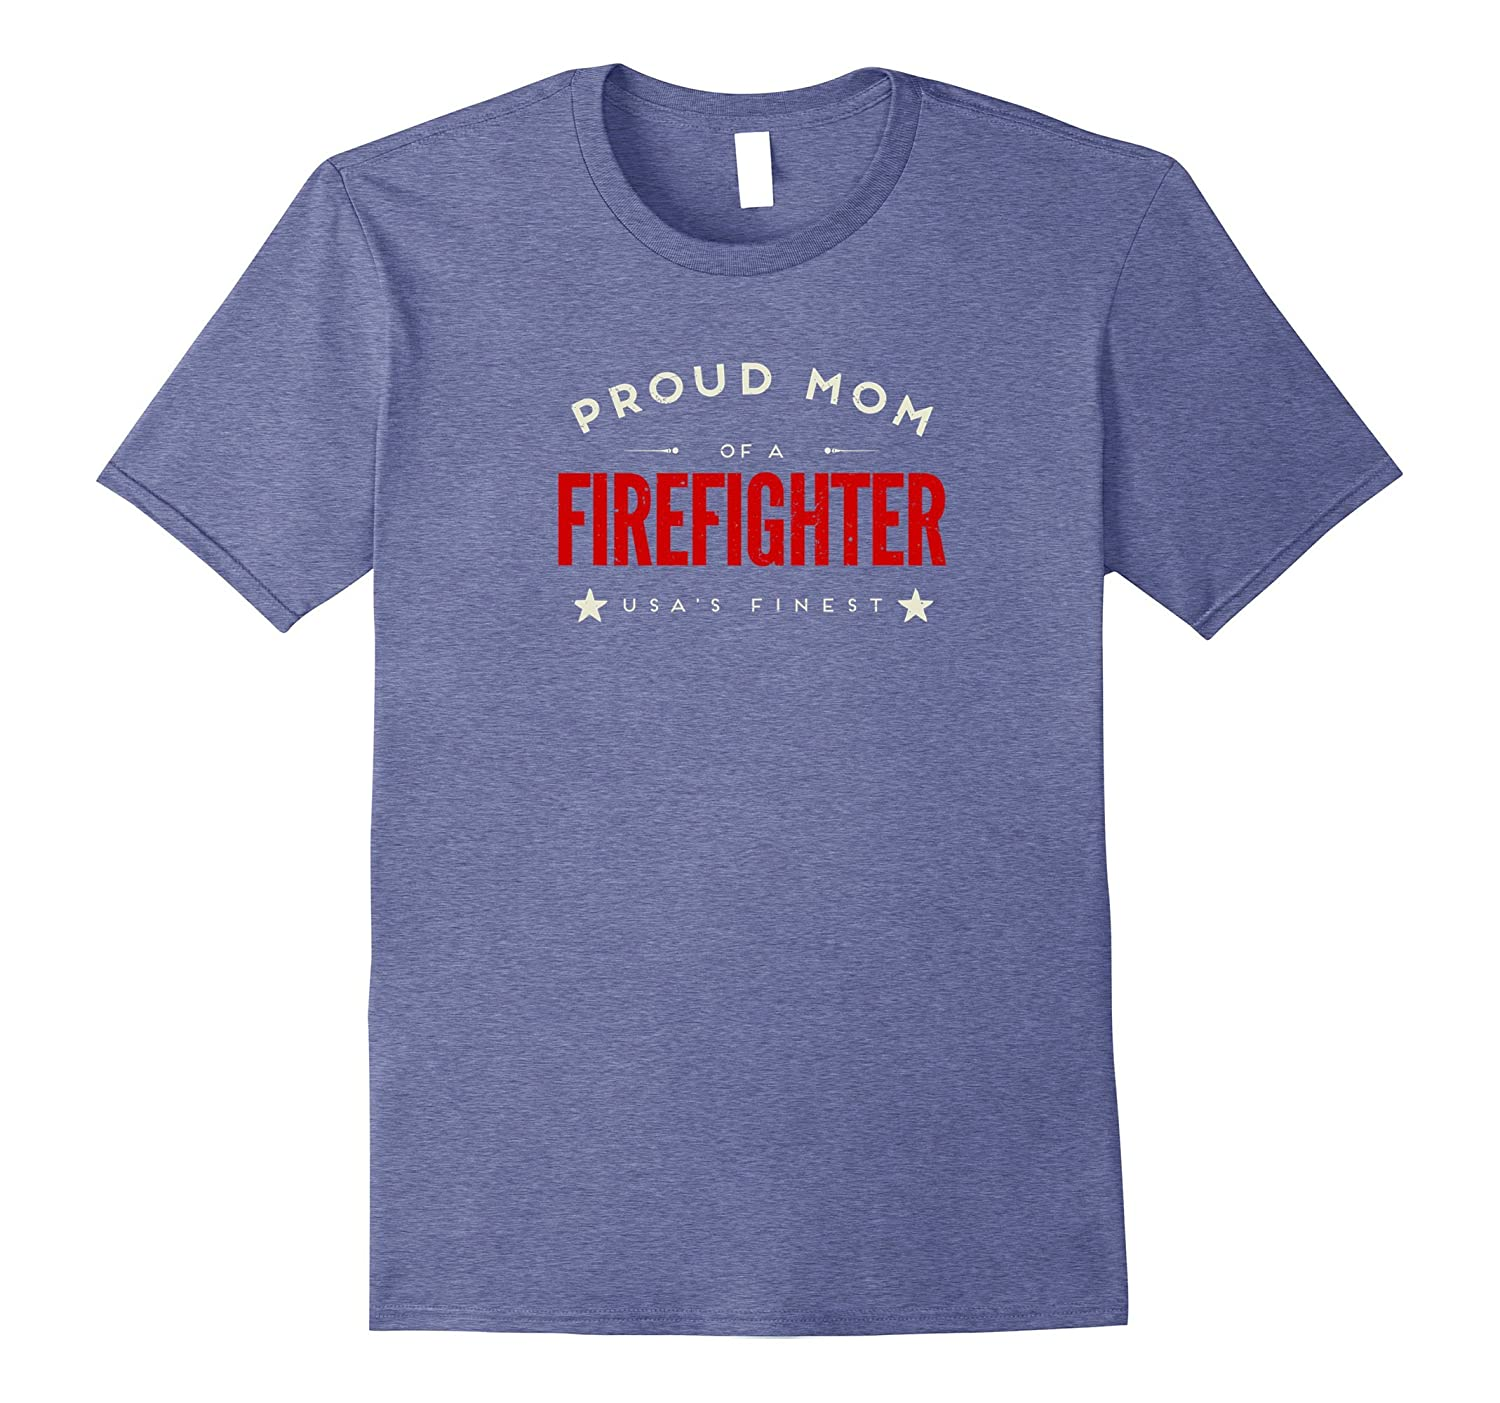 Proud Mom of a Firefighter Tshirt - Americas Finest-TJ